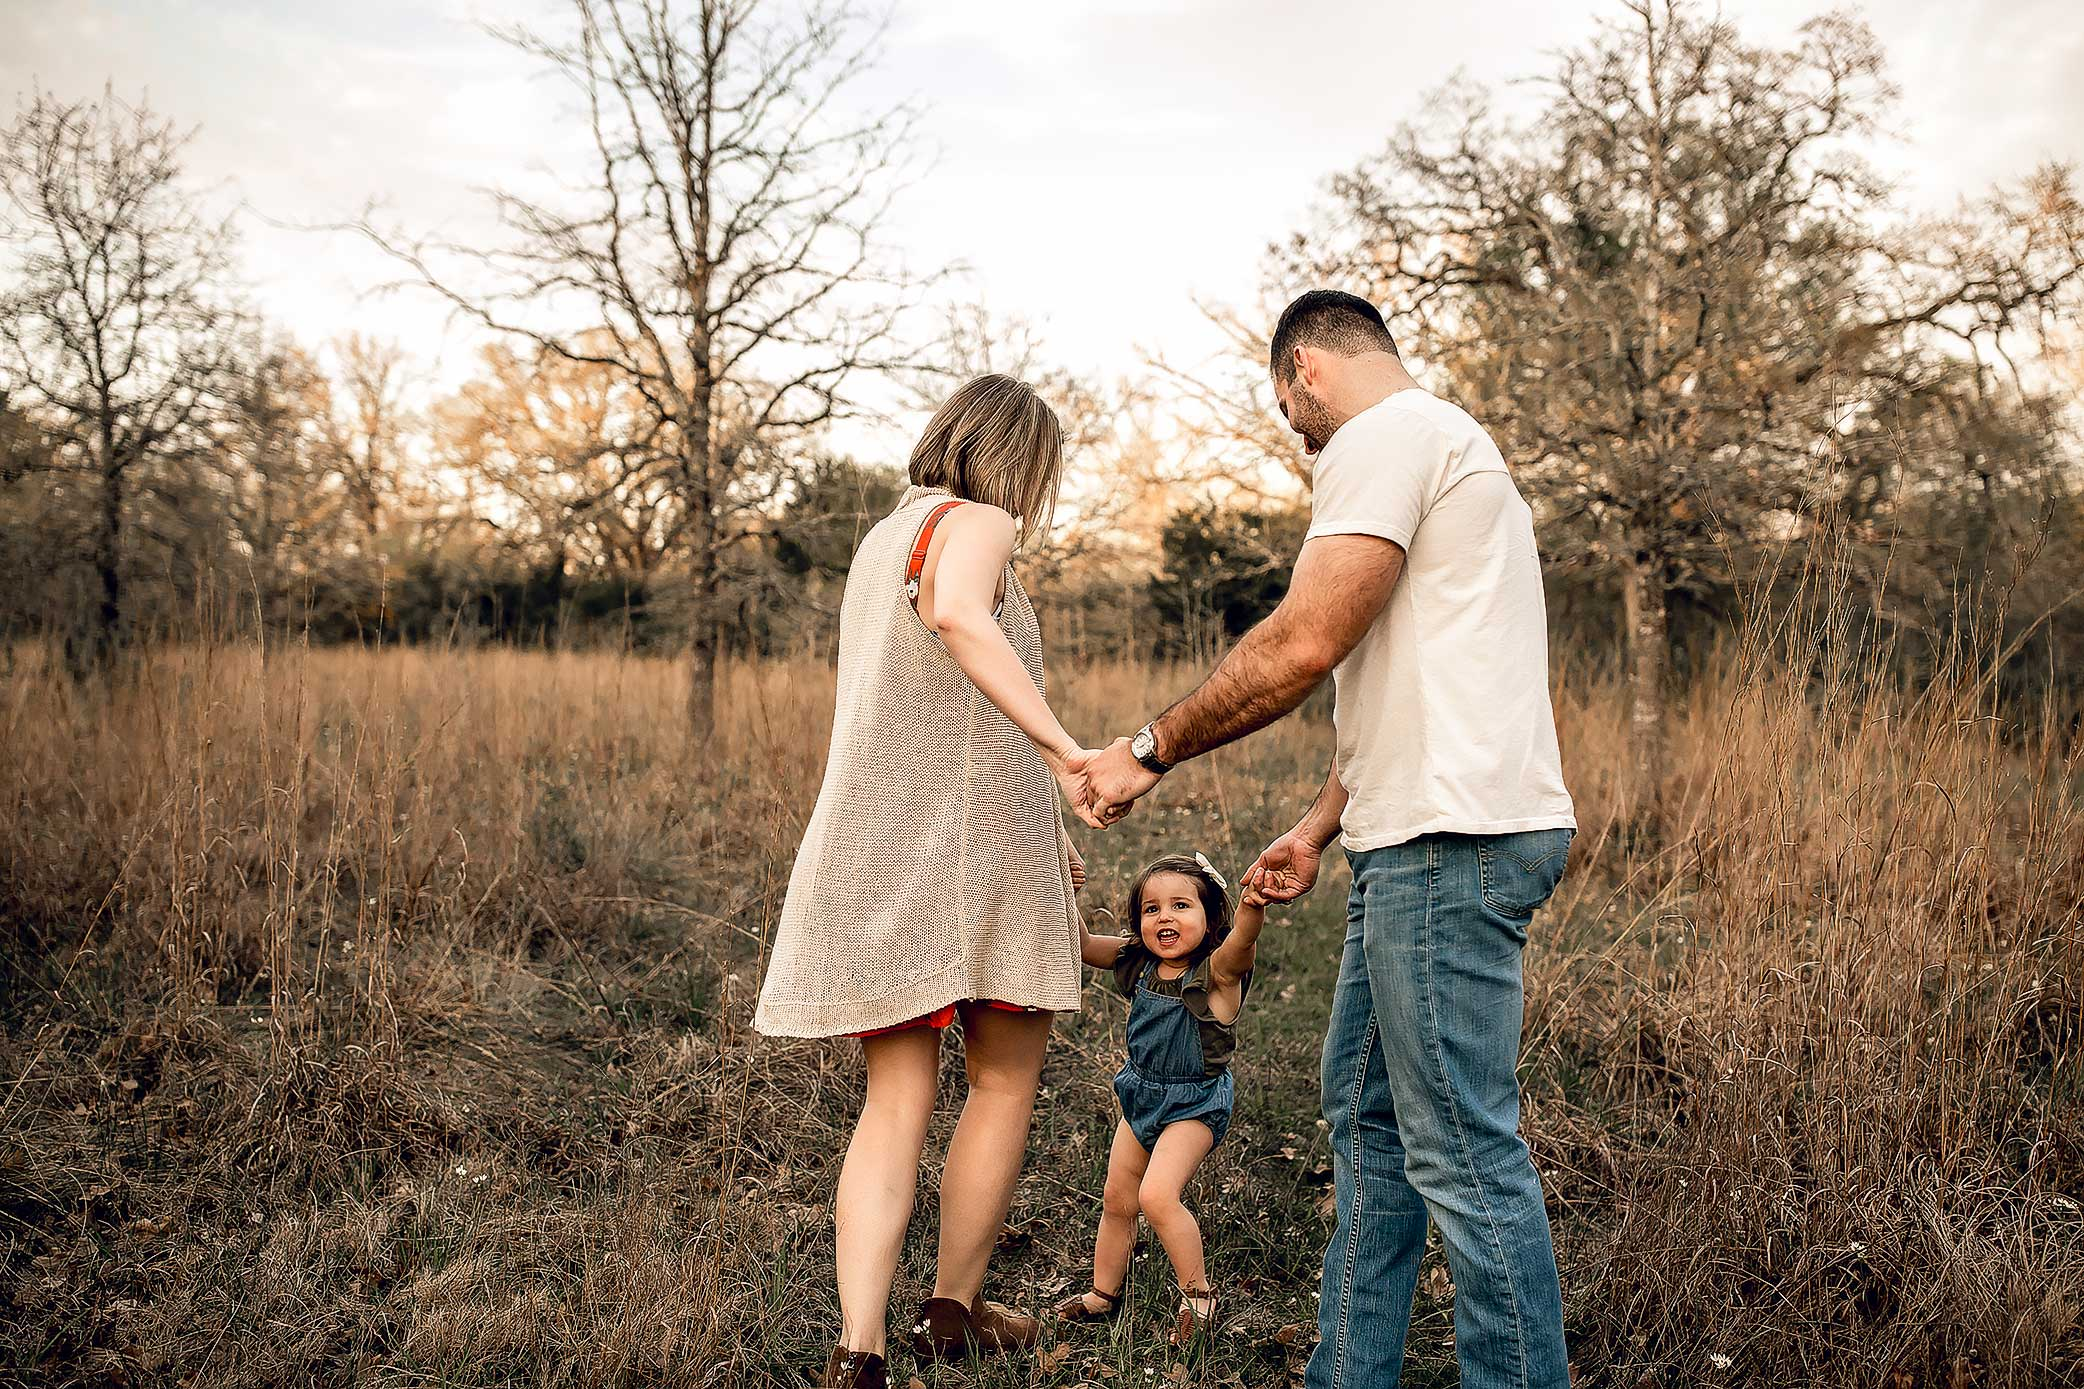 shelby-schiller-photography-sunset-family-pictures-spring-2019-49.jpg